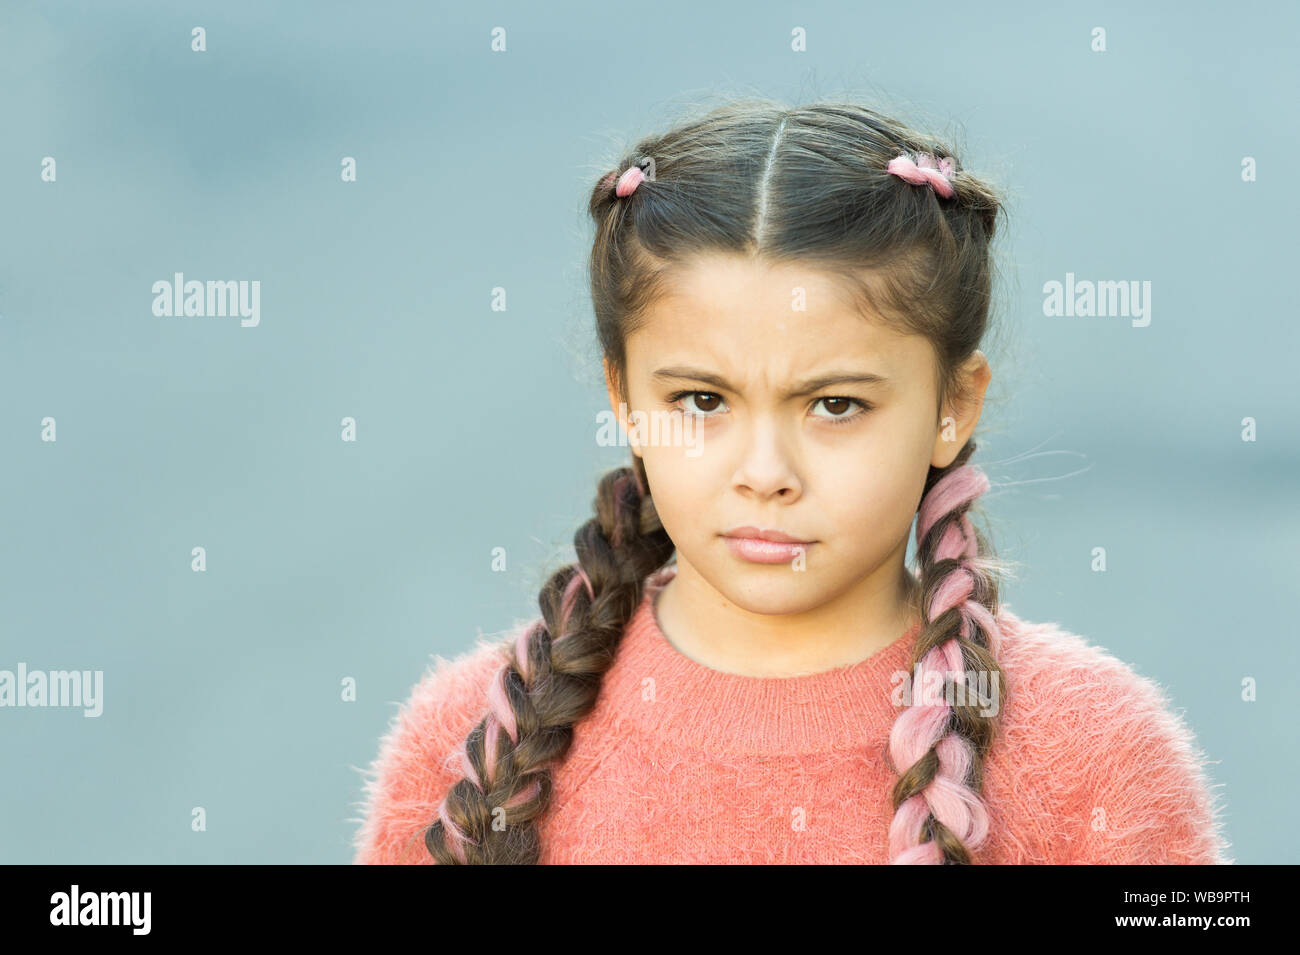 Suspicious Look Girl With Braided Hair Style Pink Kanekalon